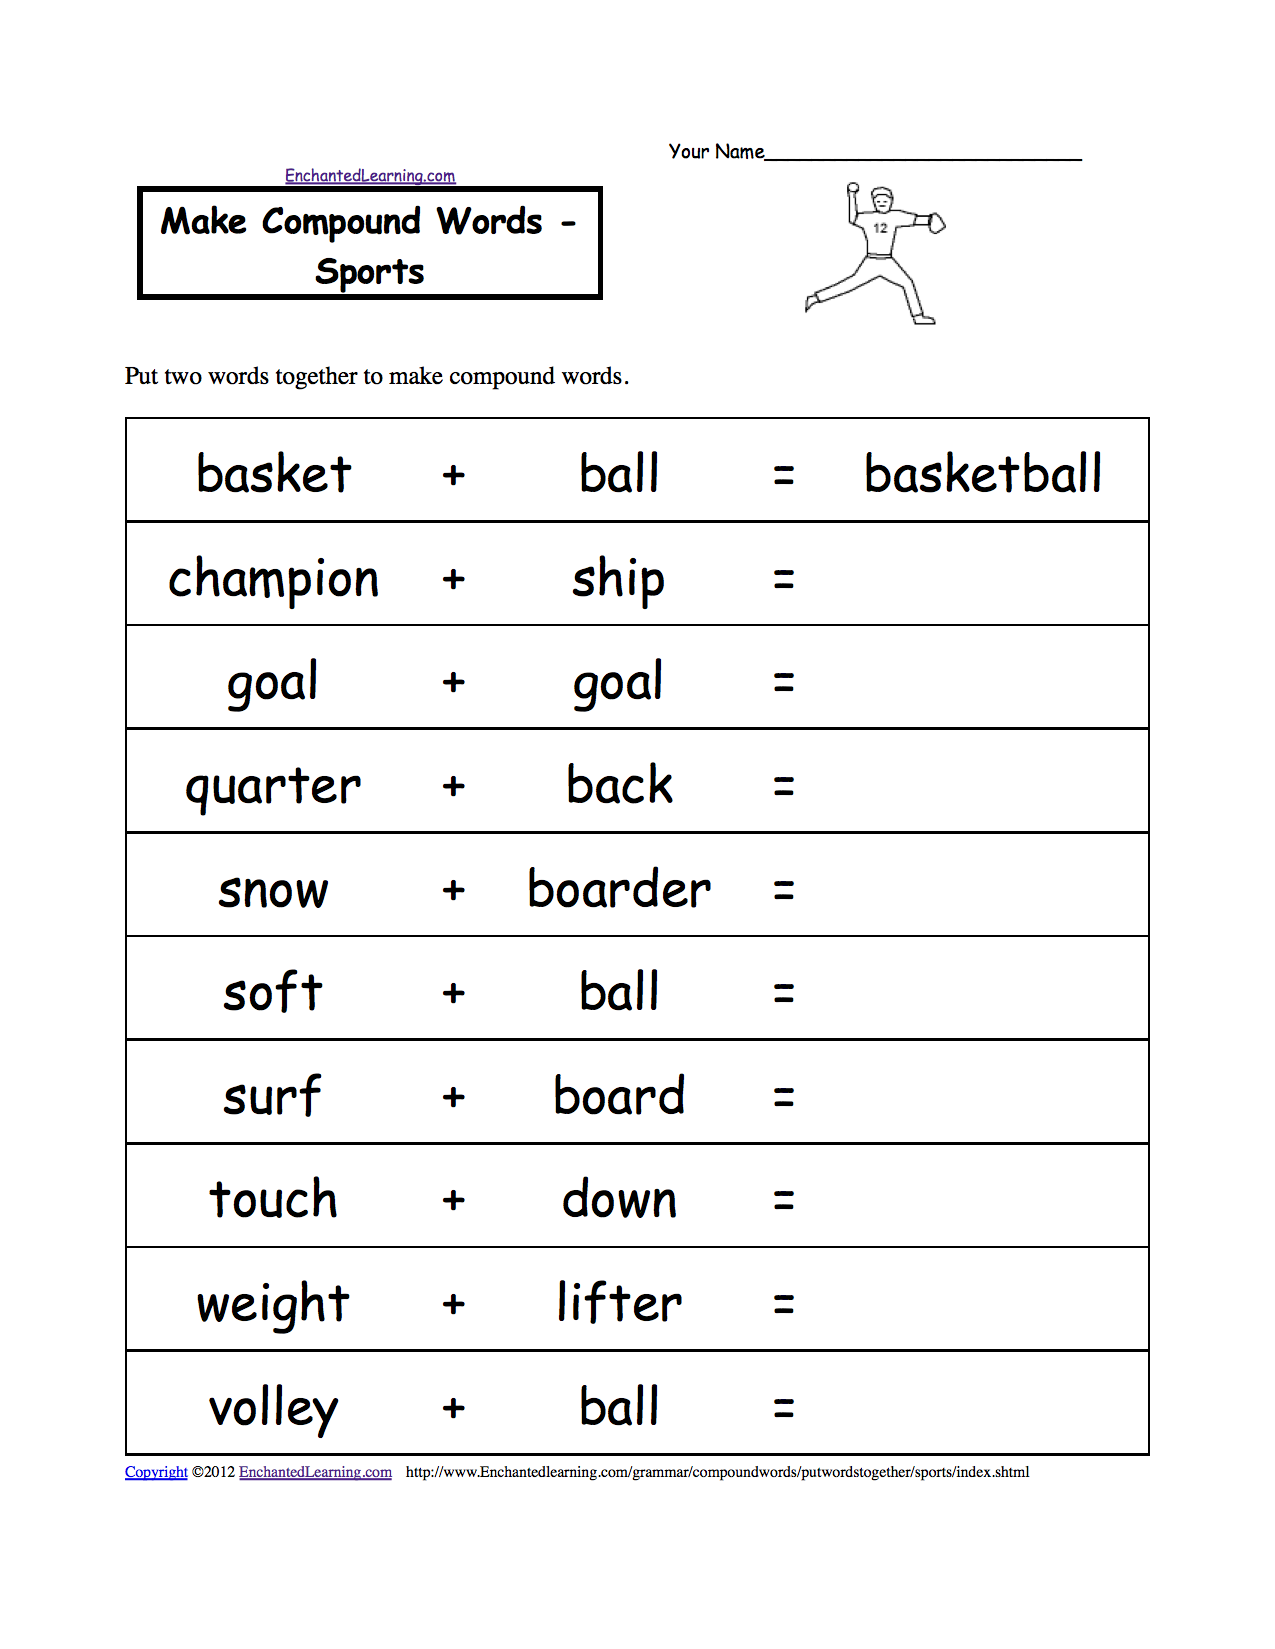 Make Compound Words